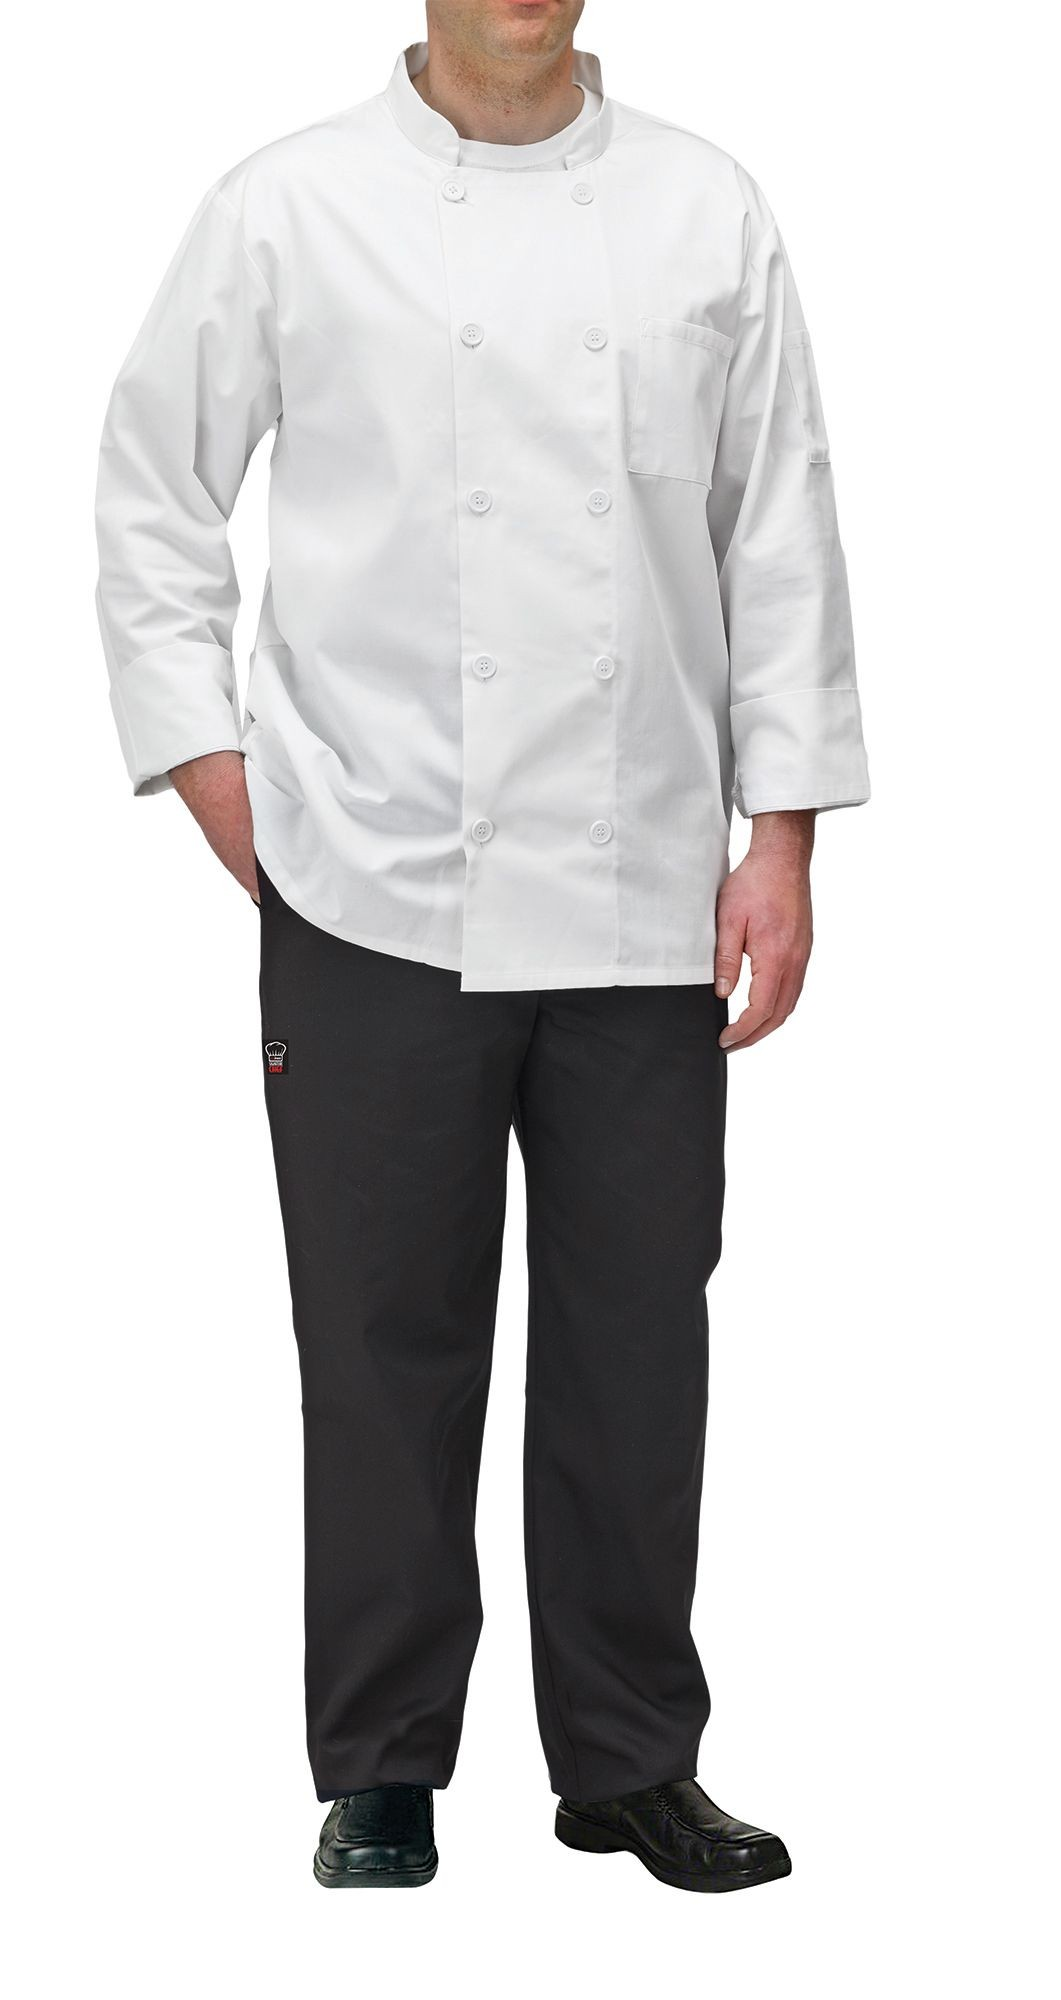 Winco UNF-5WL White Poly-Cotton Blend Double Breasted Chef Jacket with Pocket, Large